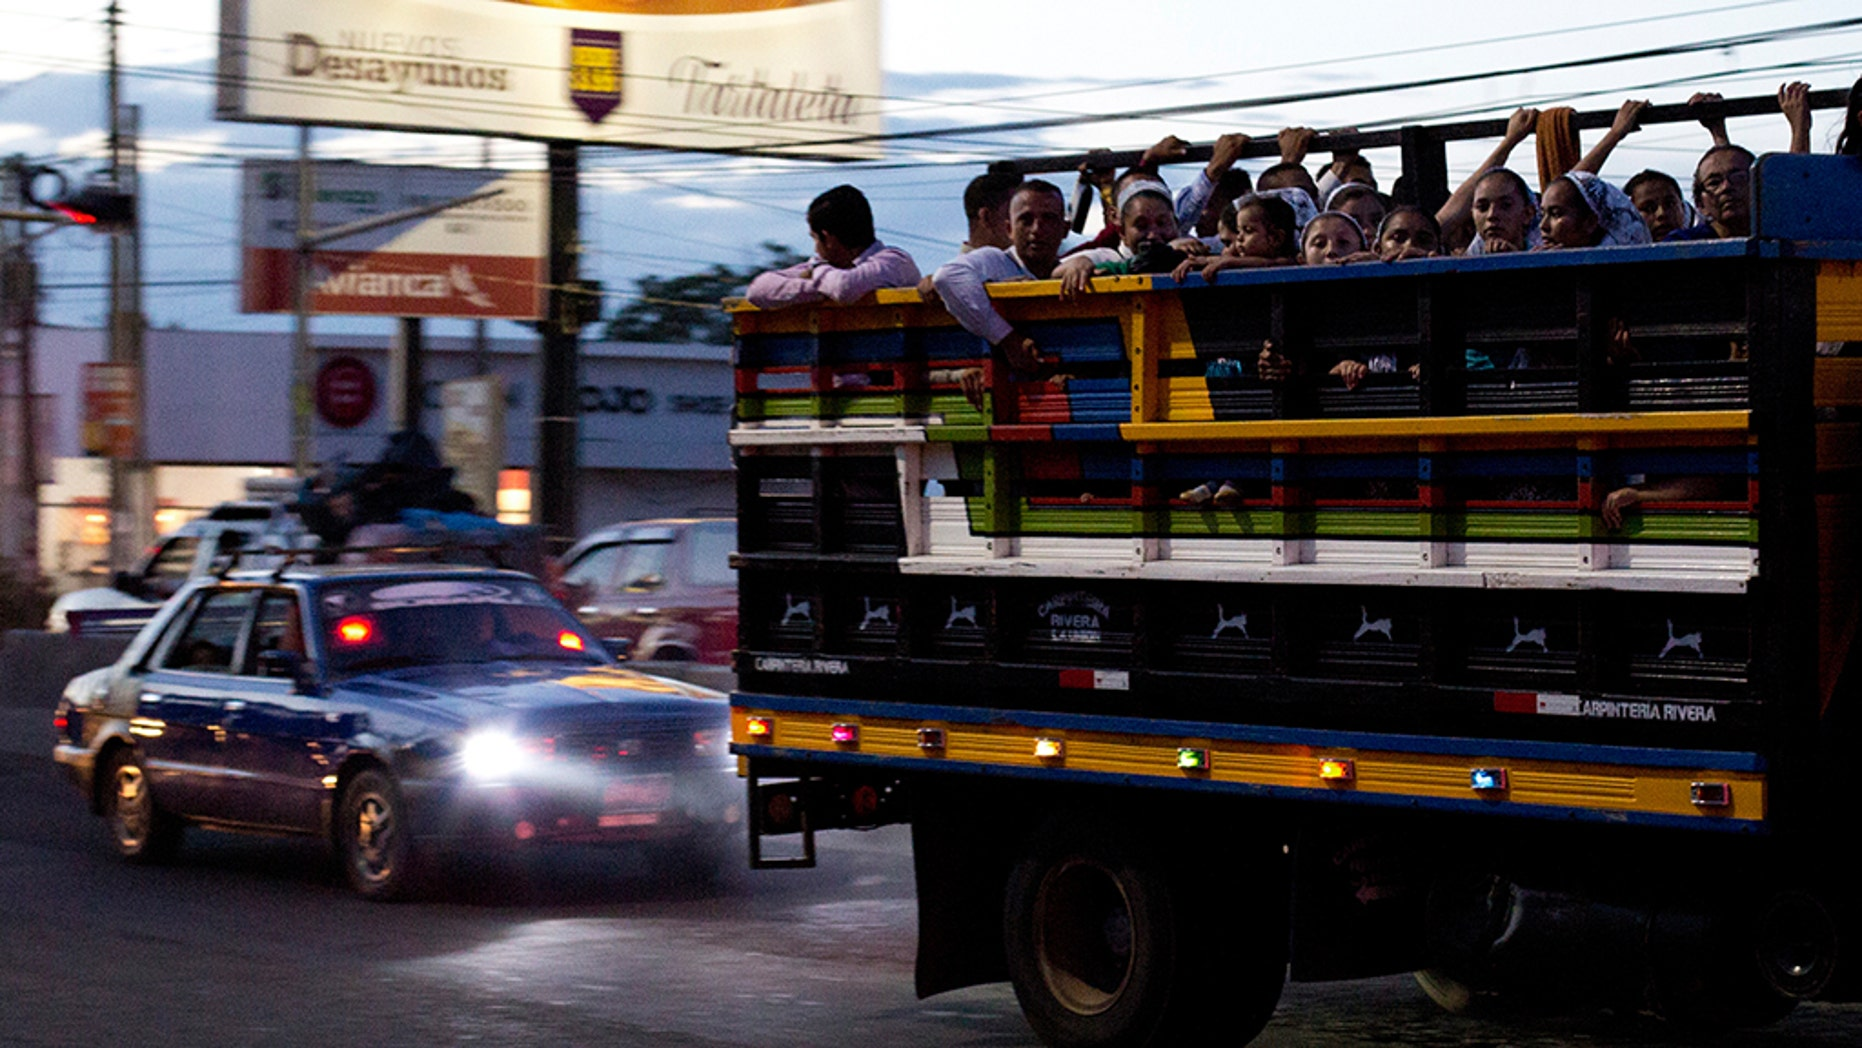 Commuters ride in the back of a pickup as night falls in San Miguel, El Salvador. It's a small country both geographically and by population, home to 6.5 million inhabitants. The International Organization for Migration estimates that another 1.35 million Salvadorans live in the United States. (AP Photo/Rebecca Blackwell, File)